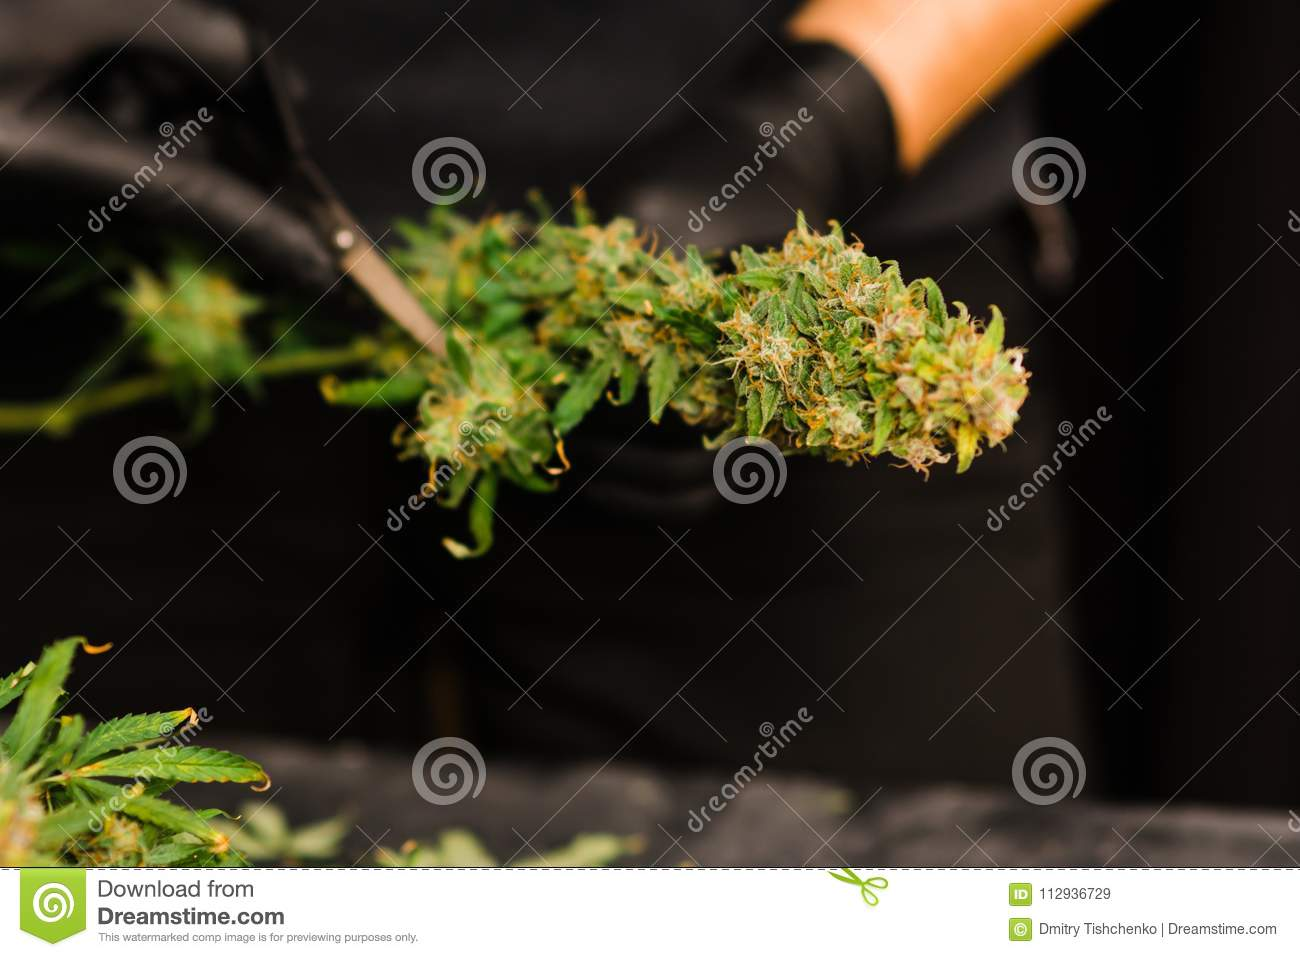 A Man Grower Is Trimming Fresh Harvest Cannabis Buds